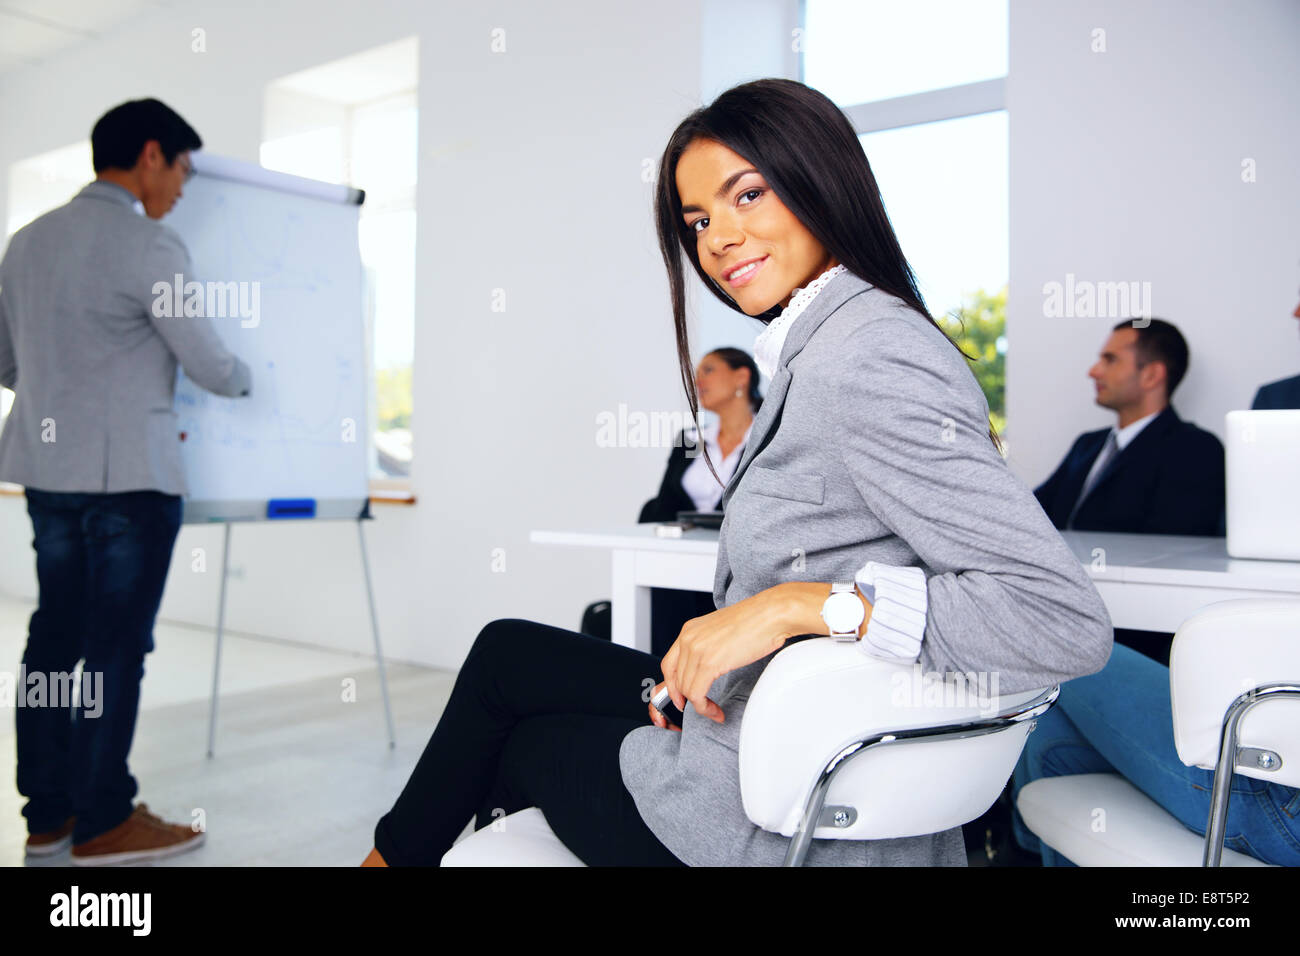 Business conference. Business meeting. Business people in formalwear discussing something while sitting together - Stock Image